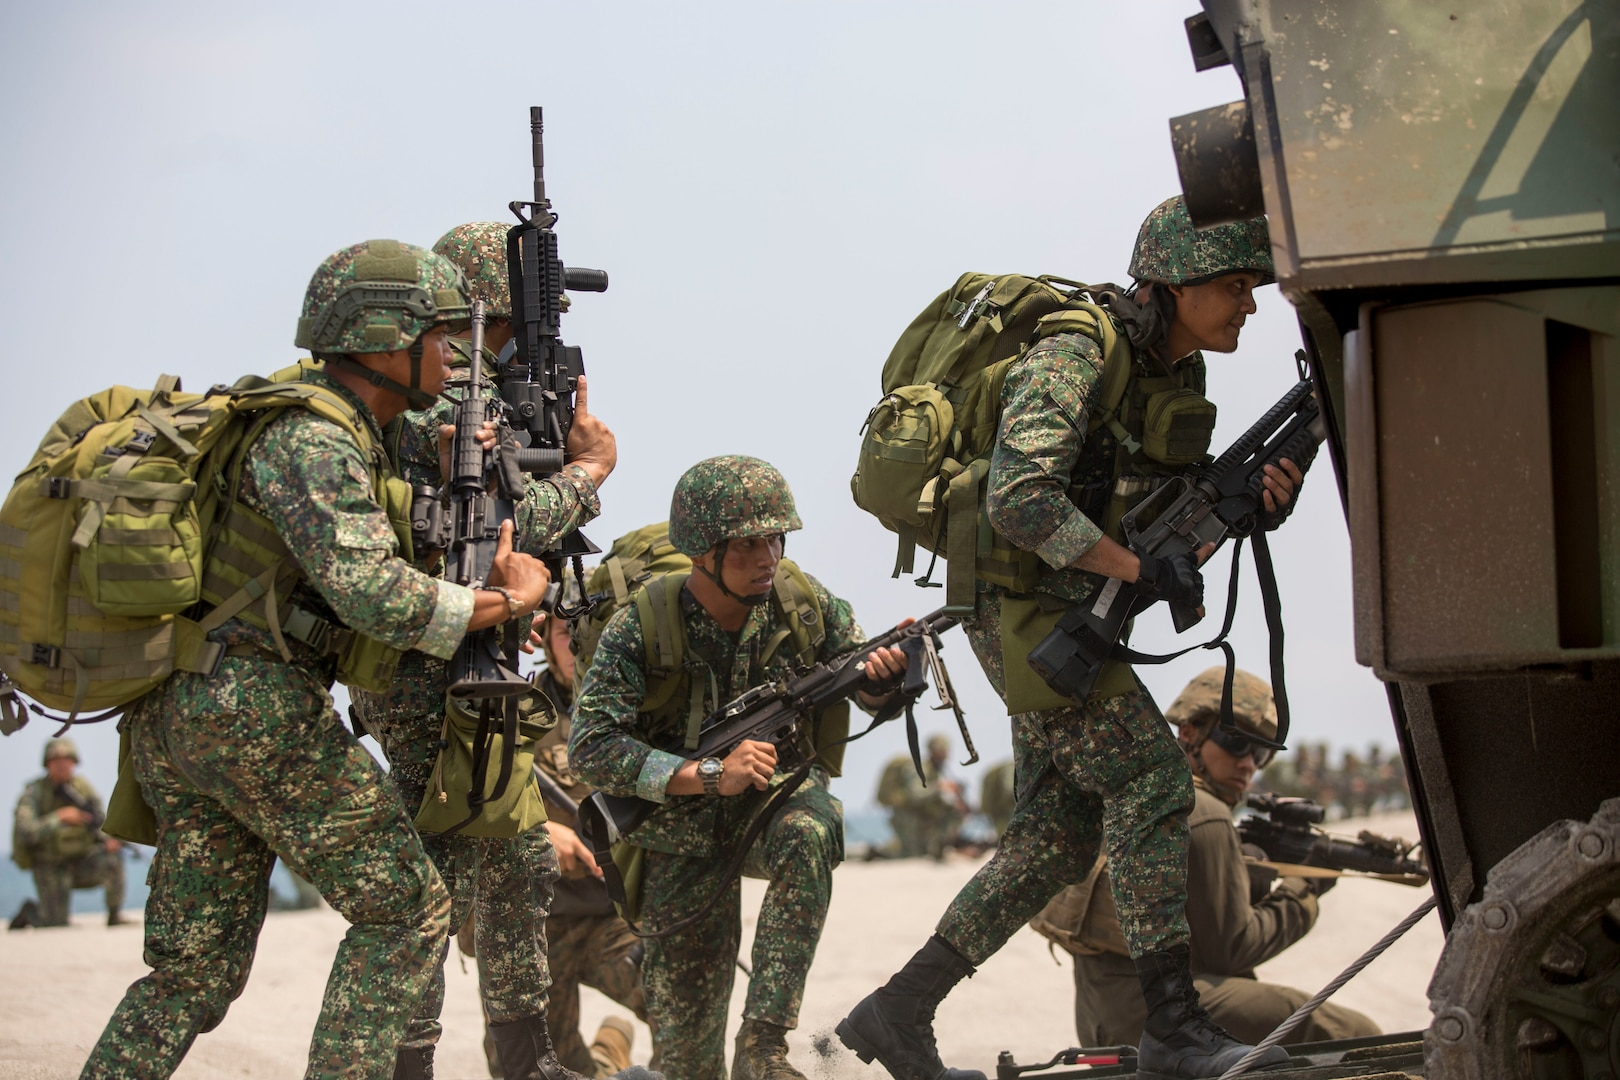 U.S. Marines assigned to 2nd Battalion, 8th Marine Regiment and Philippine Marines with 10th Marines Company ride in an assault amphibious vehicle during an amphibious landing exercise at the Navy Education and Training Command in San Antonio, Zambales, May 9, 2018 during Exercise Balikatan. This training is held to further interoperability between the U.S. and the Philippines while conducting amphibious exercises. Exercise Balikatan, in its 34th iteration, is an annual U.S.-Philippine military training exercise focused on a variety of missions, including humanitarian assistance and disaster relief, counterterrorism and other combined military operations held from May 7 to 18. (U.S. Marine Corps photo by Cpl. Charles Plouffe)